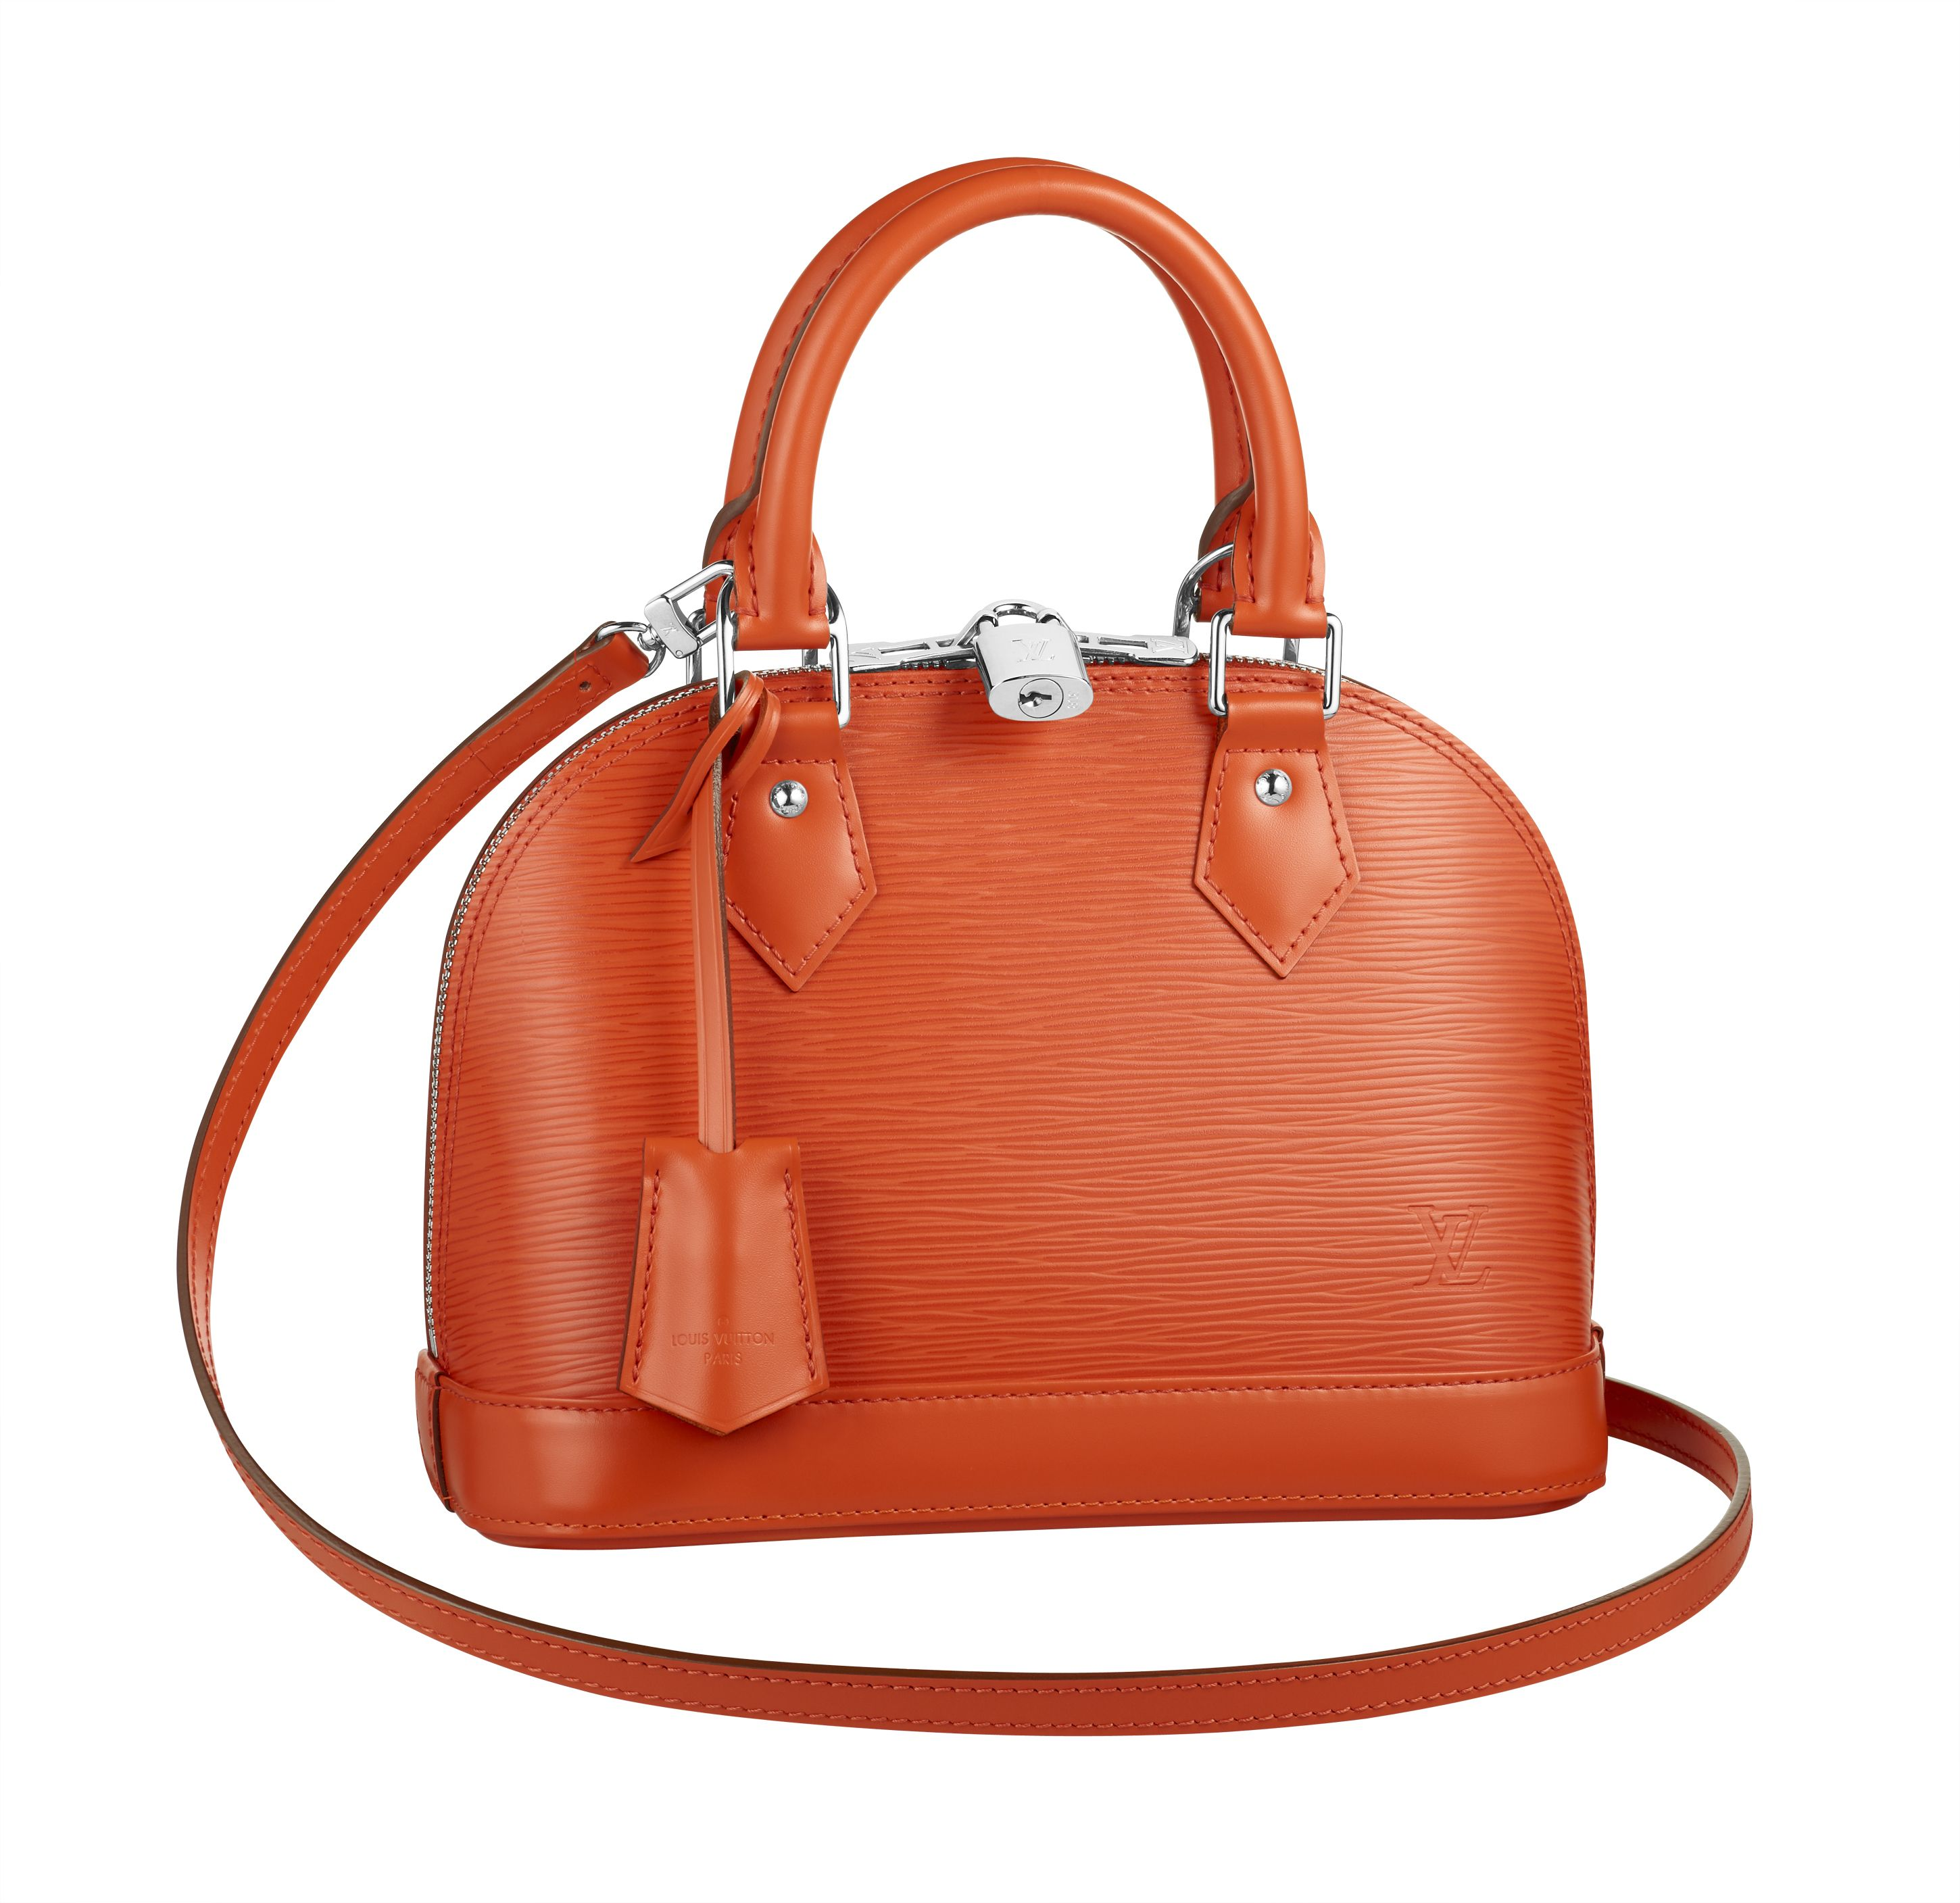 Find Louis Vuitton Love with the Alma BB in Epi Piment.